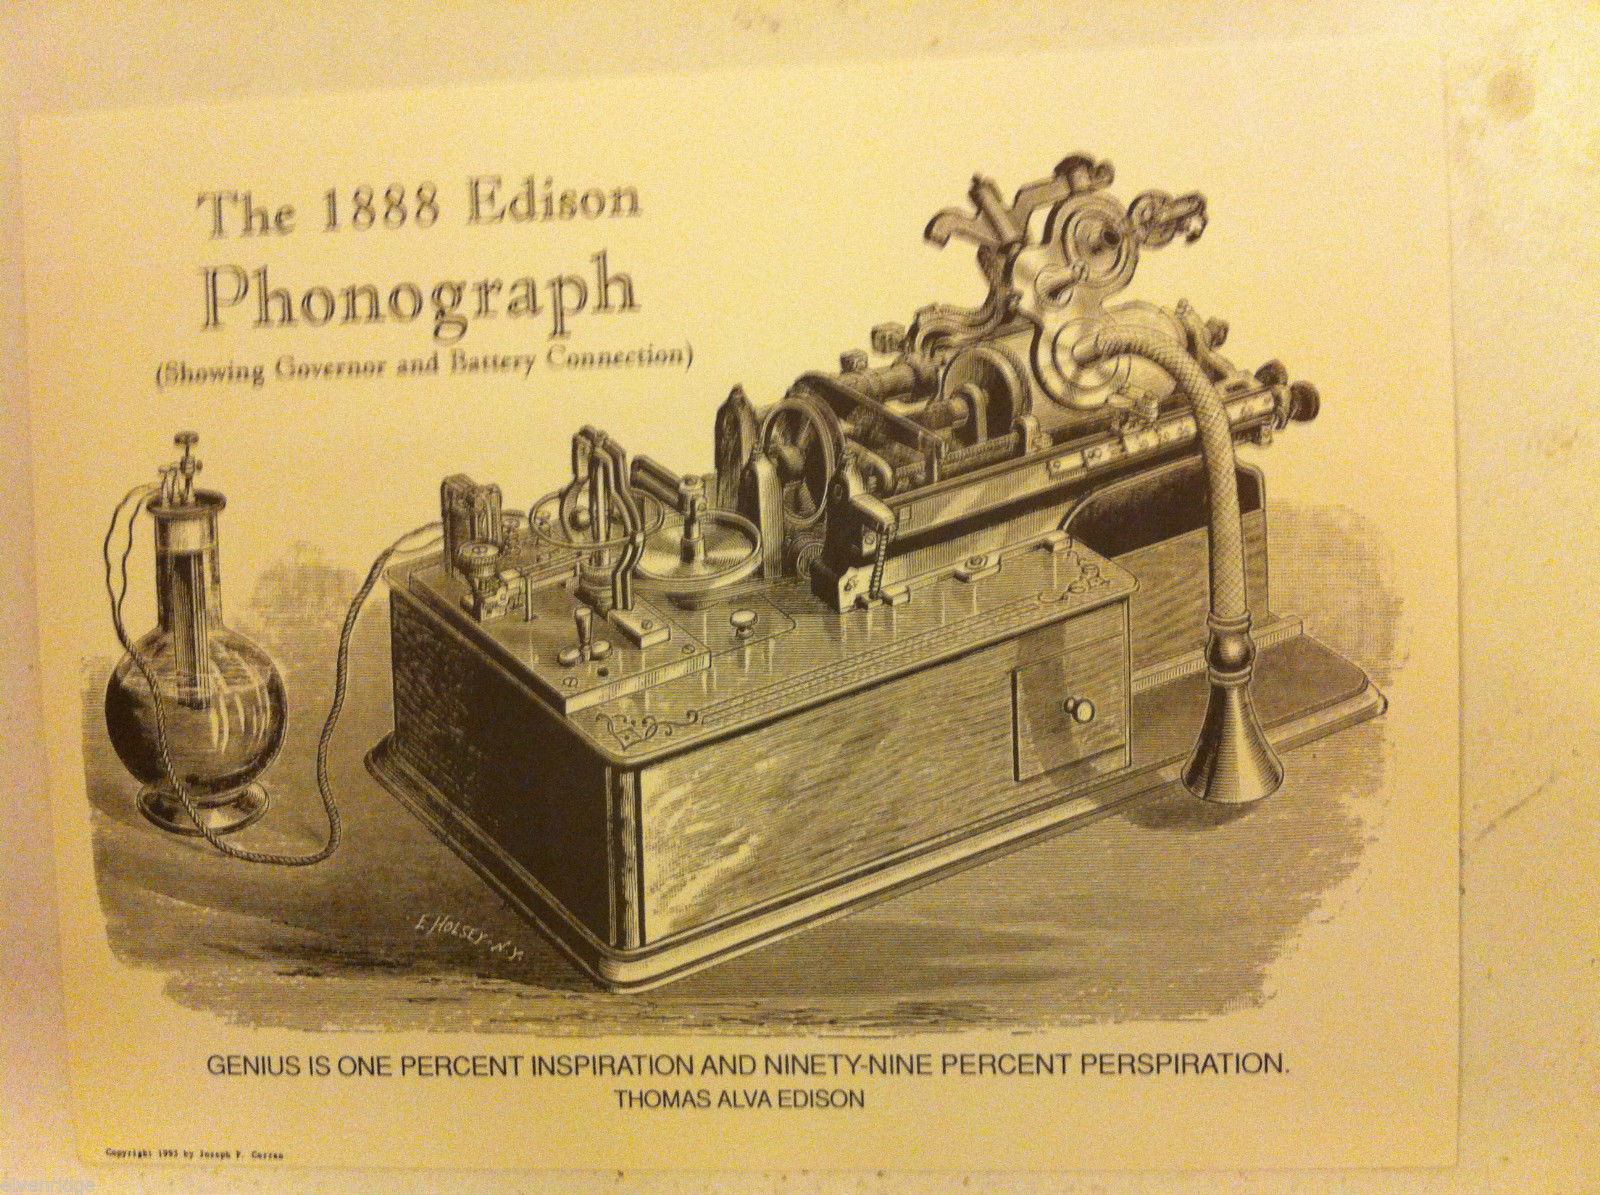 Poster of Edison 1888 Phonograph Steel Engraving Reproduction with genius quote